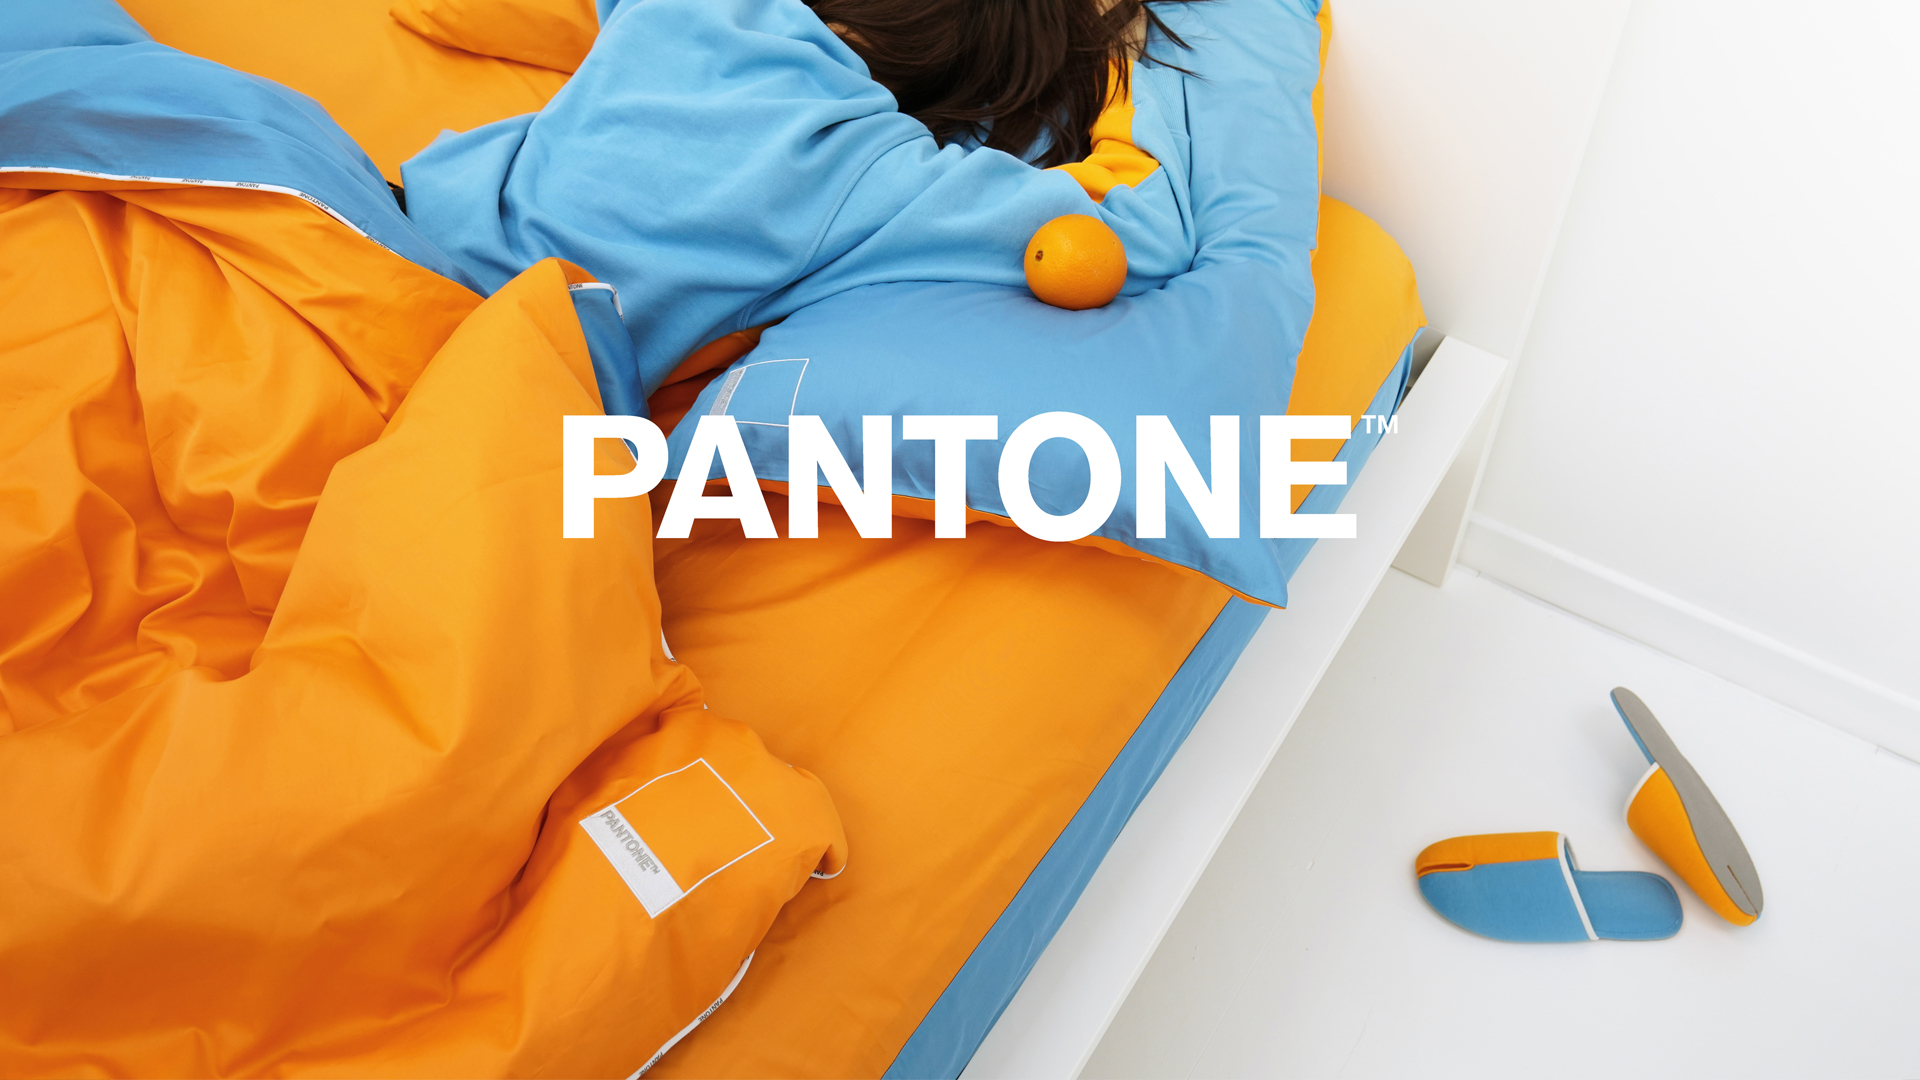 Pantone strikes out with new physical store and product range